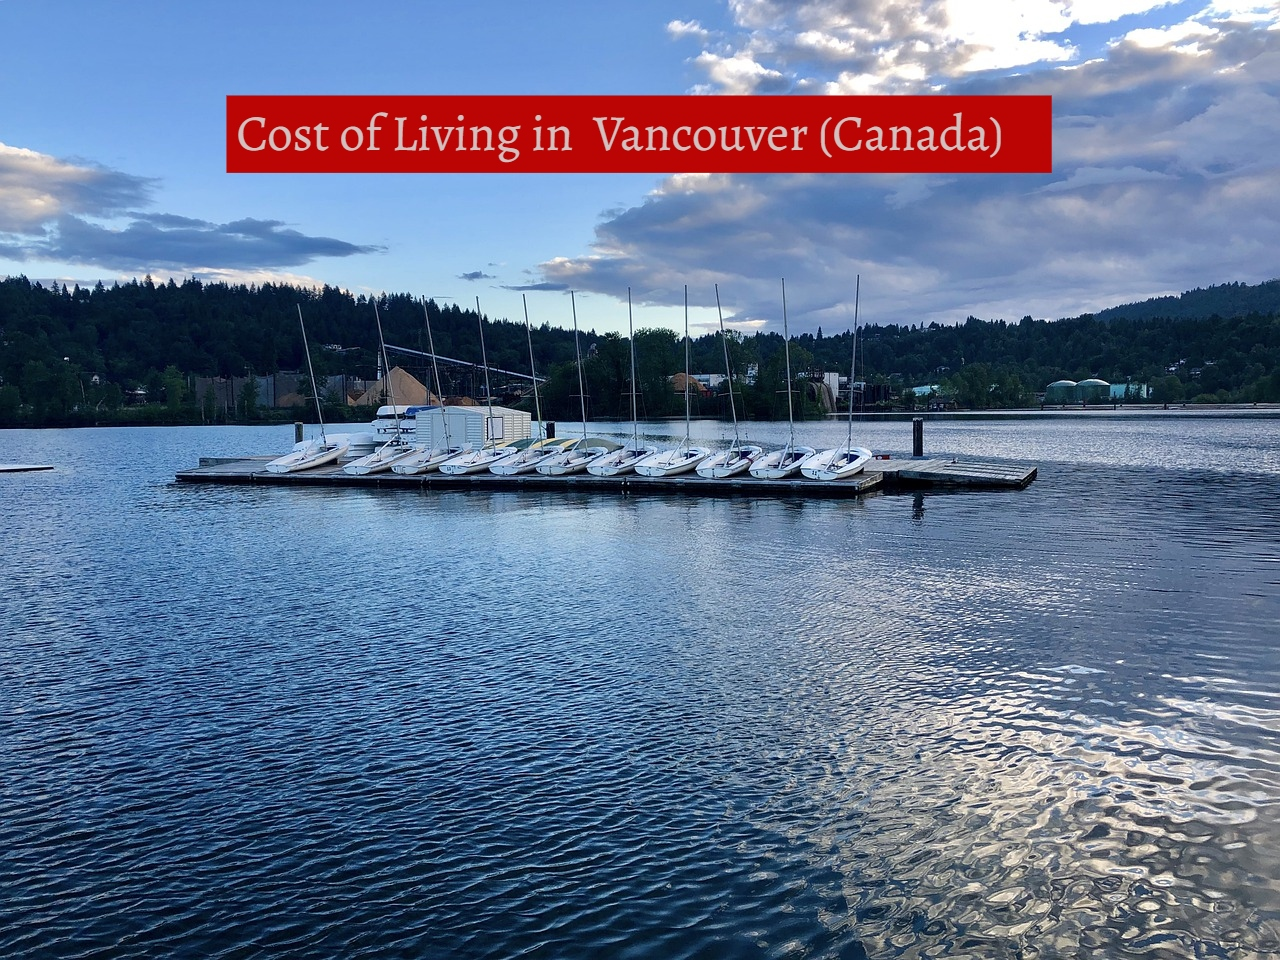 Cost of living in Vancouver (Canada) -UTTD